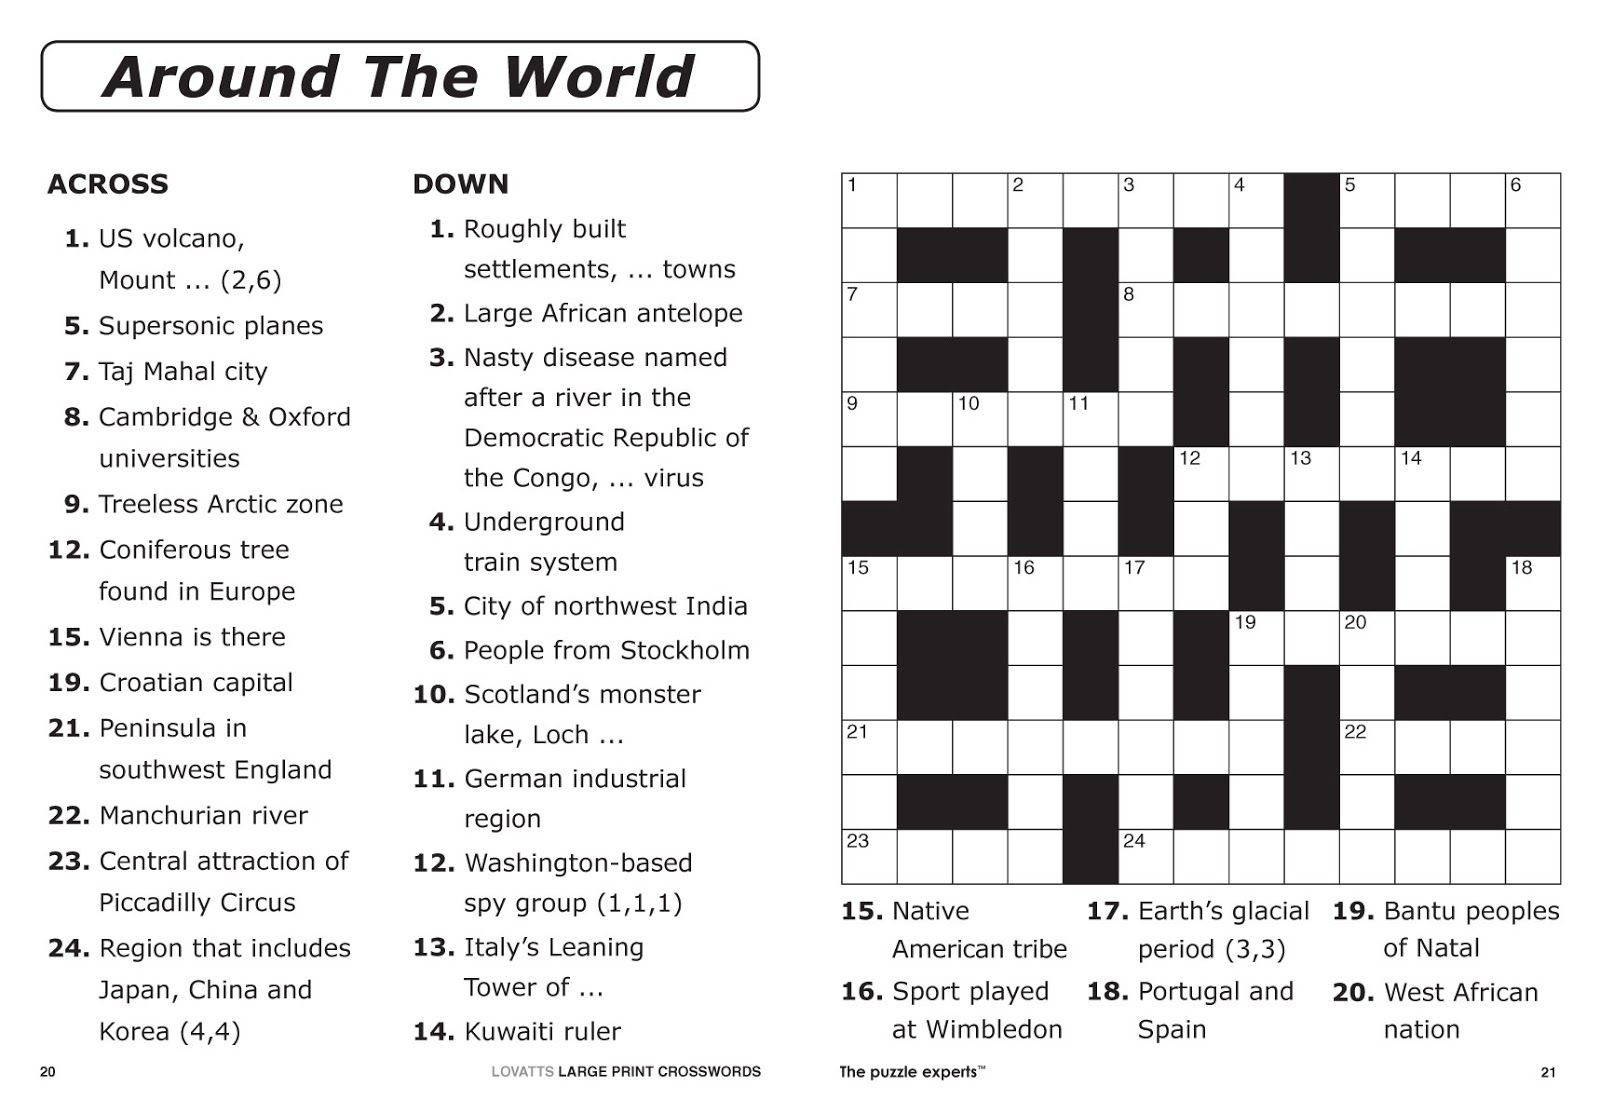 Free Printable Large Print Crossword Puzzles | M3U8 - Free Printable Easy Crossword Puzzles For Beginners